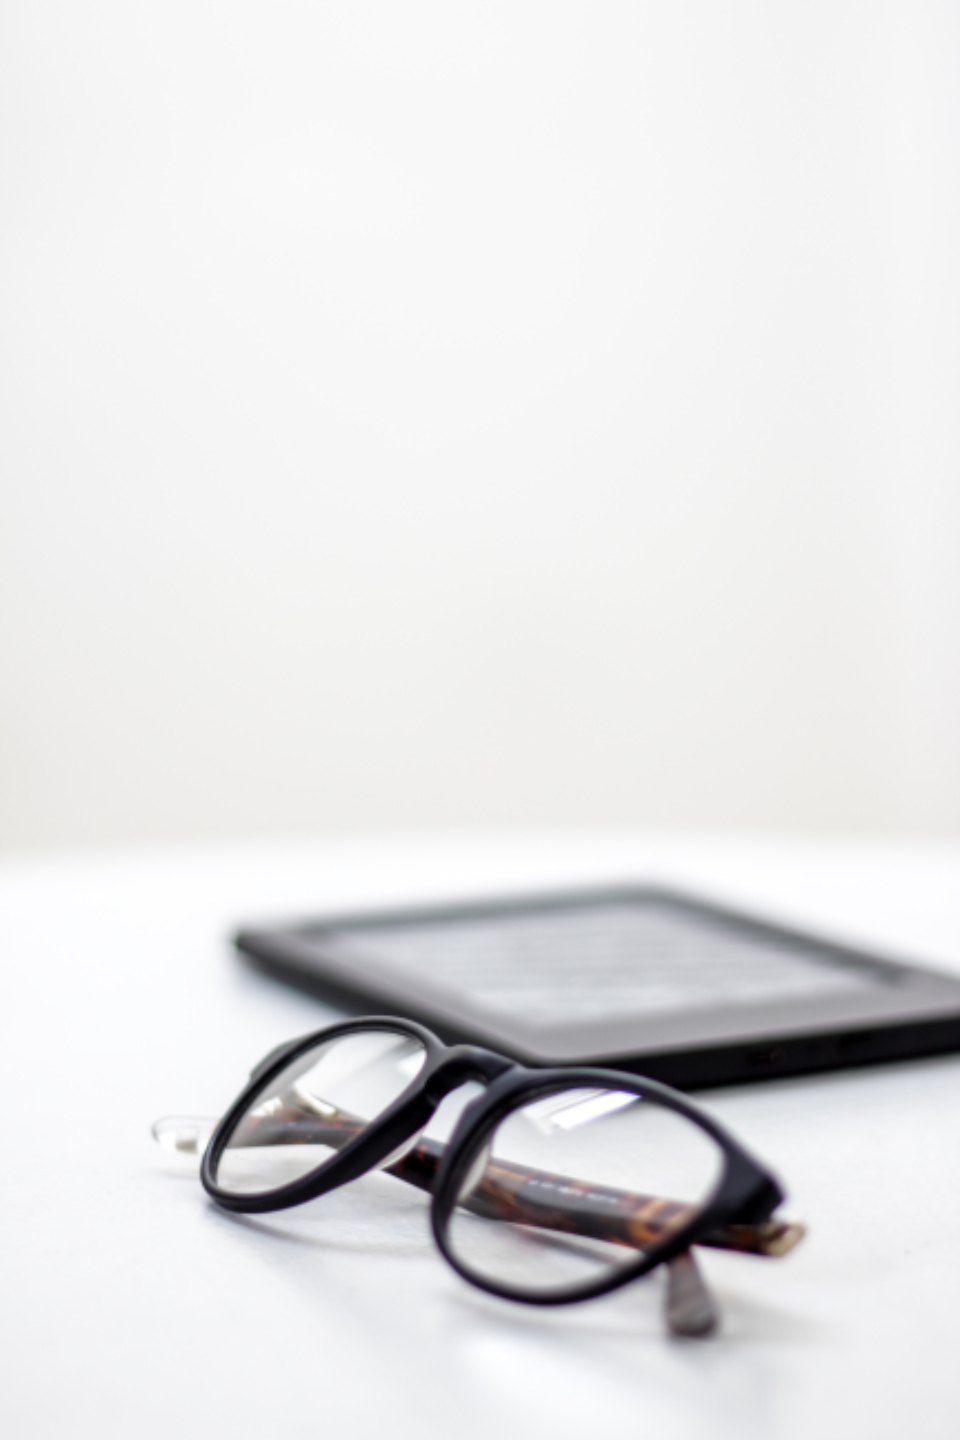 glasses white table tablet reading close up bokeh background copy space eyewear modern nobody object optic vision style